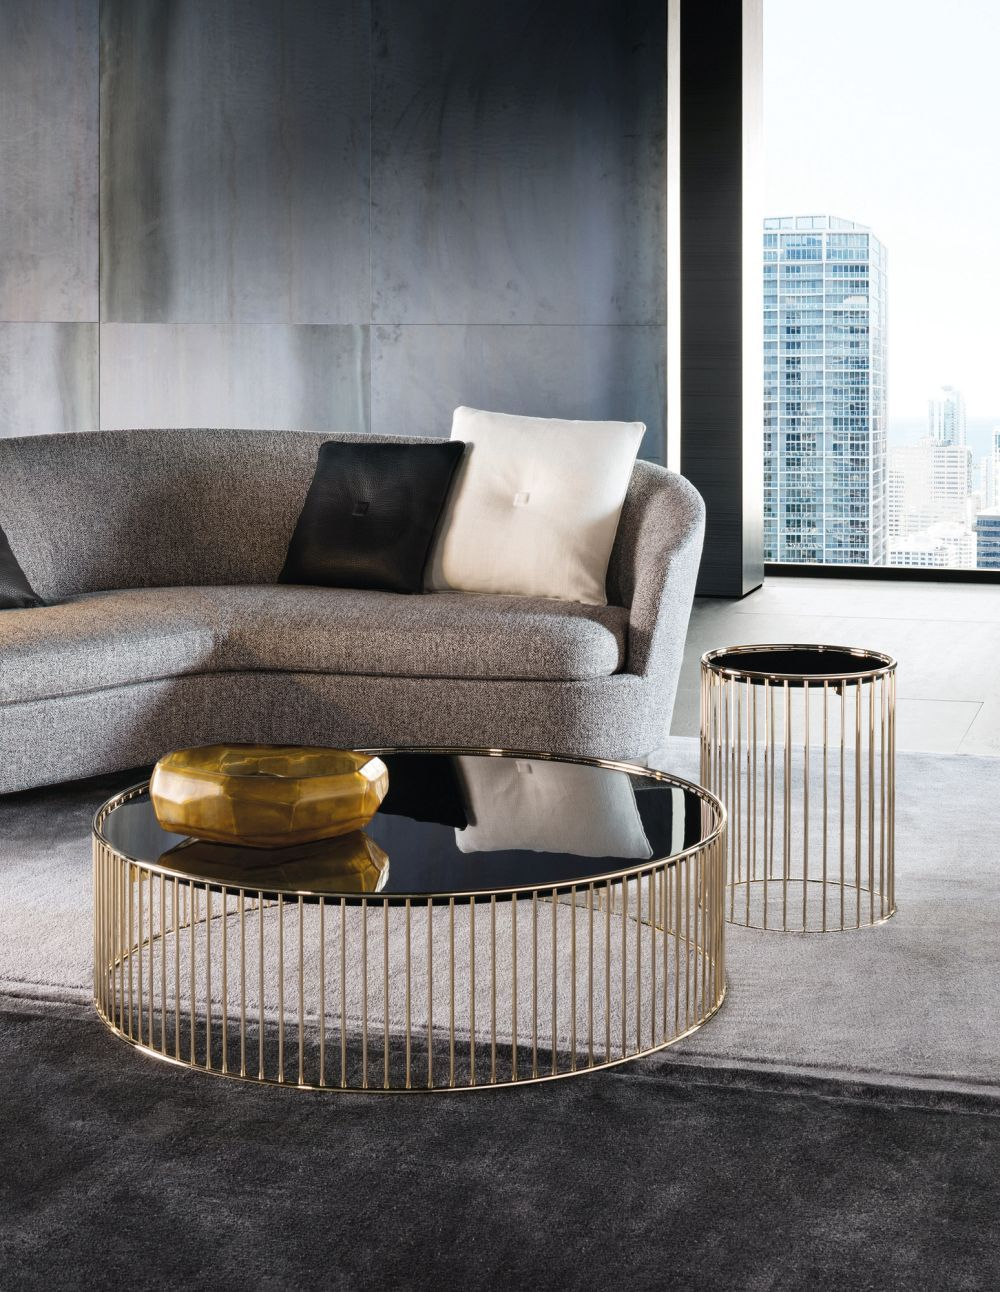 Gold Coffee Tables With Trendy And Sophisticated Designs Coffee Table Design Modern Coffee Table Gold Coffee Table